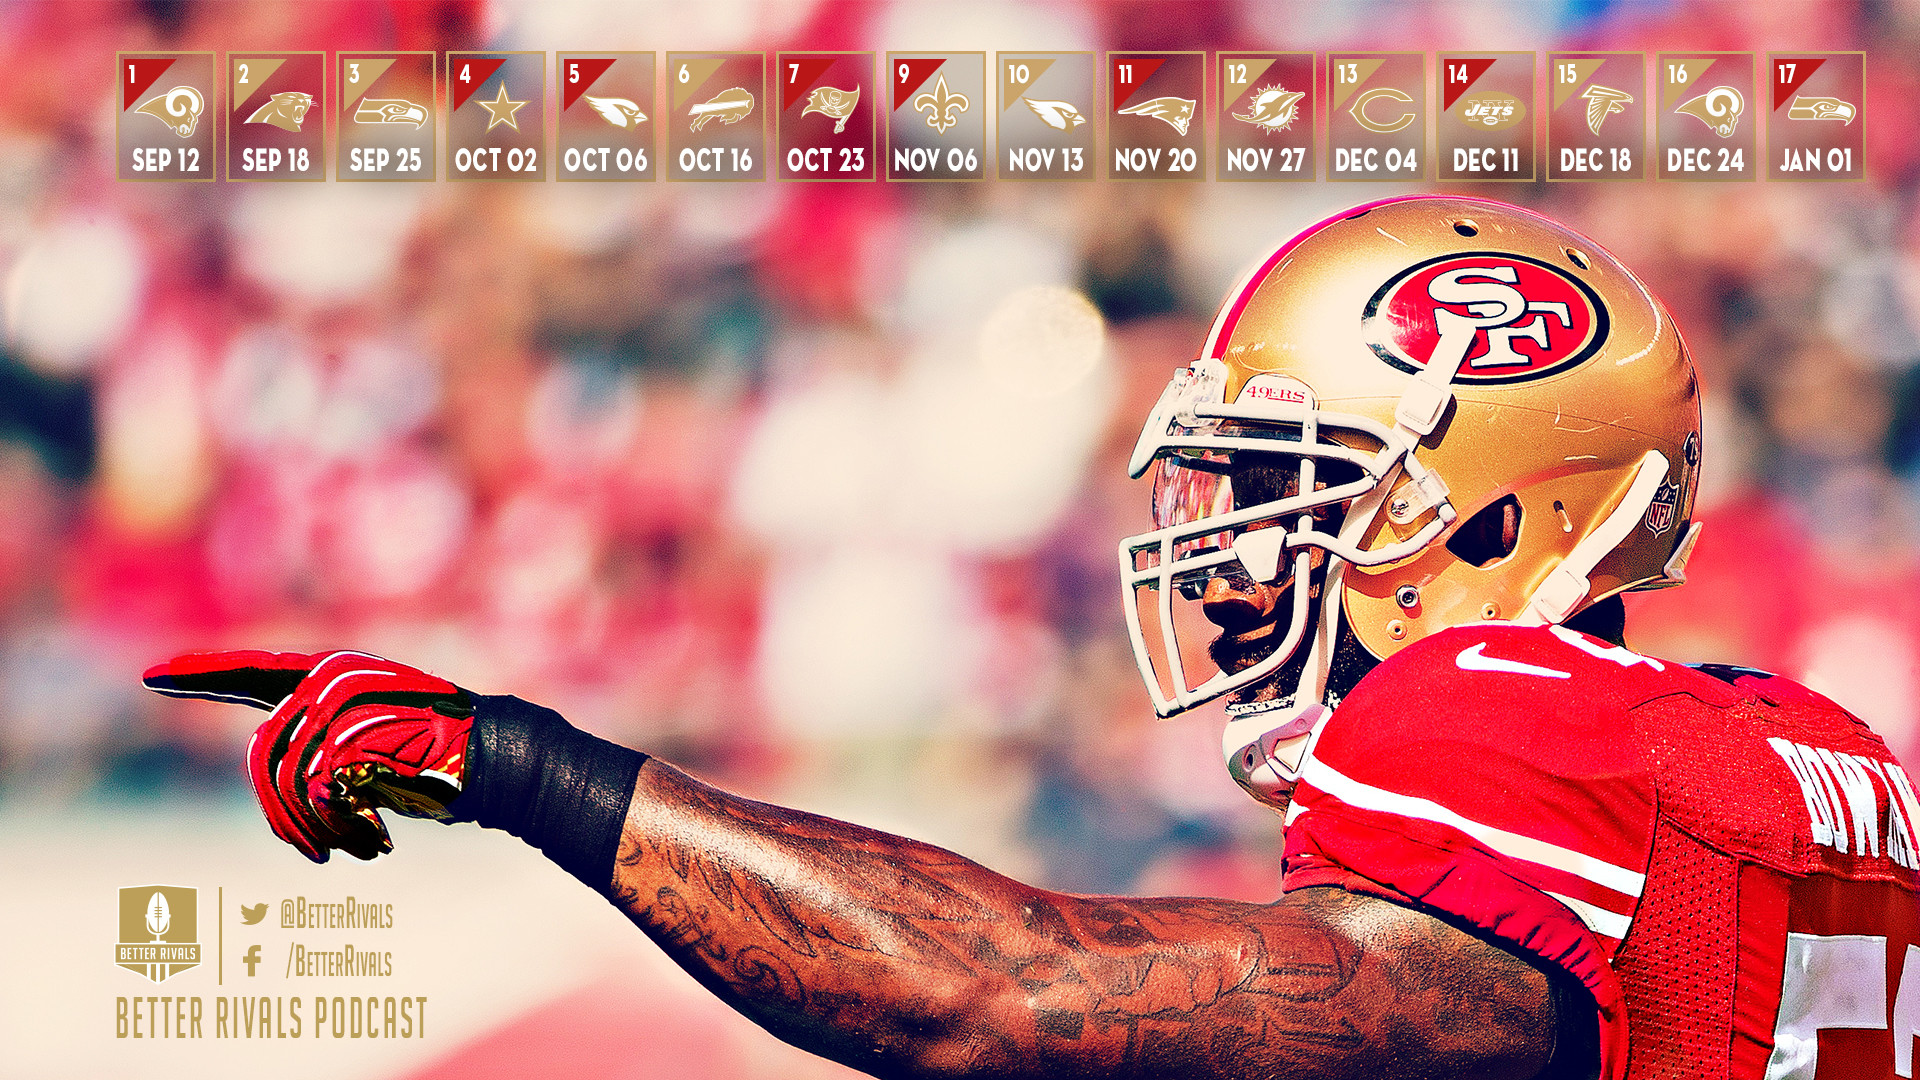 49ers wallpapers 183��